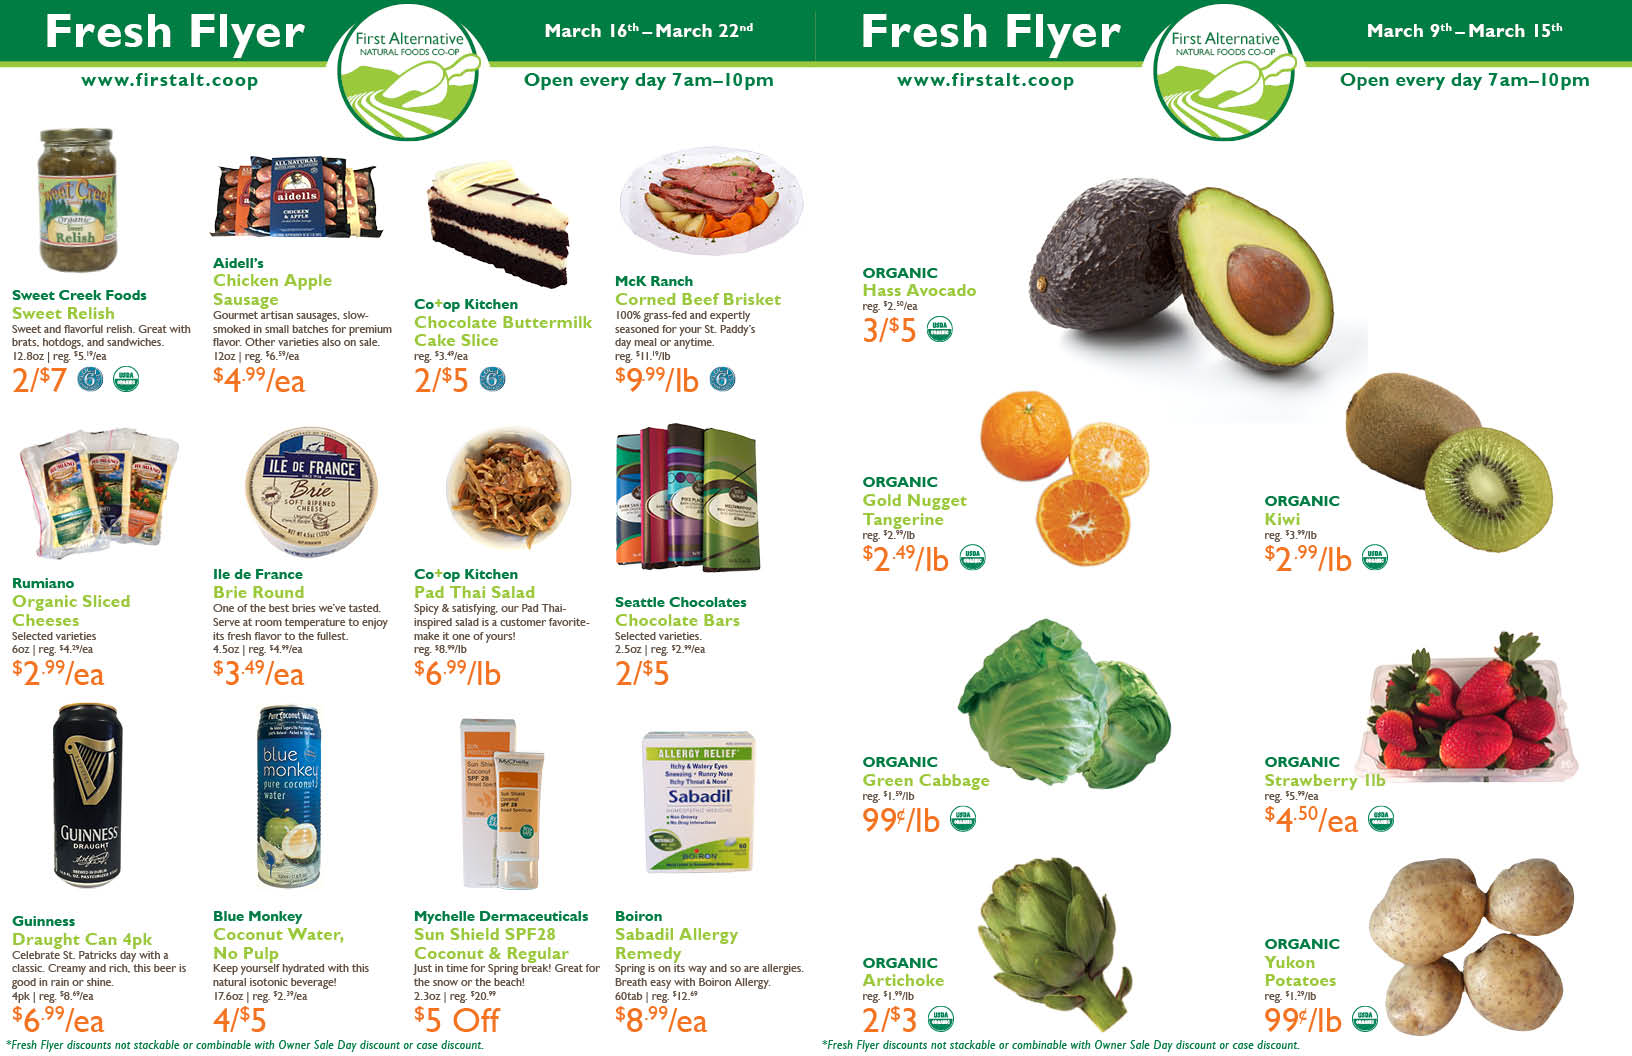 First Alternative Co-op Fresh Flyer March 9 - March 15